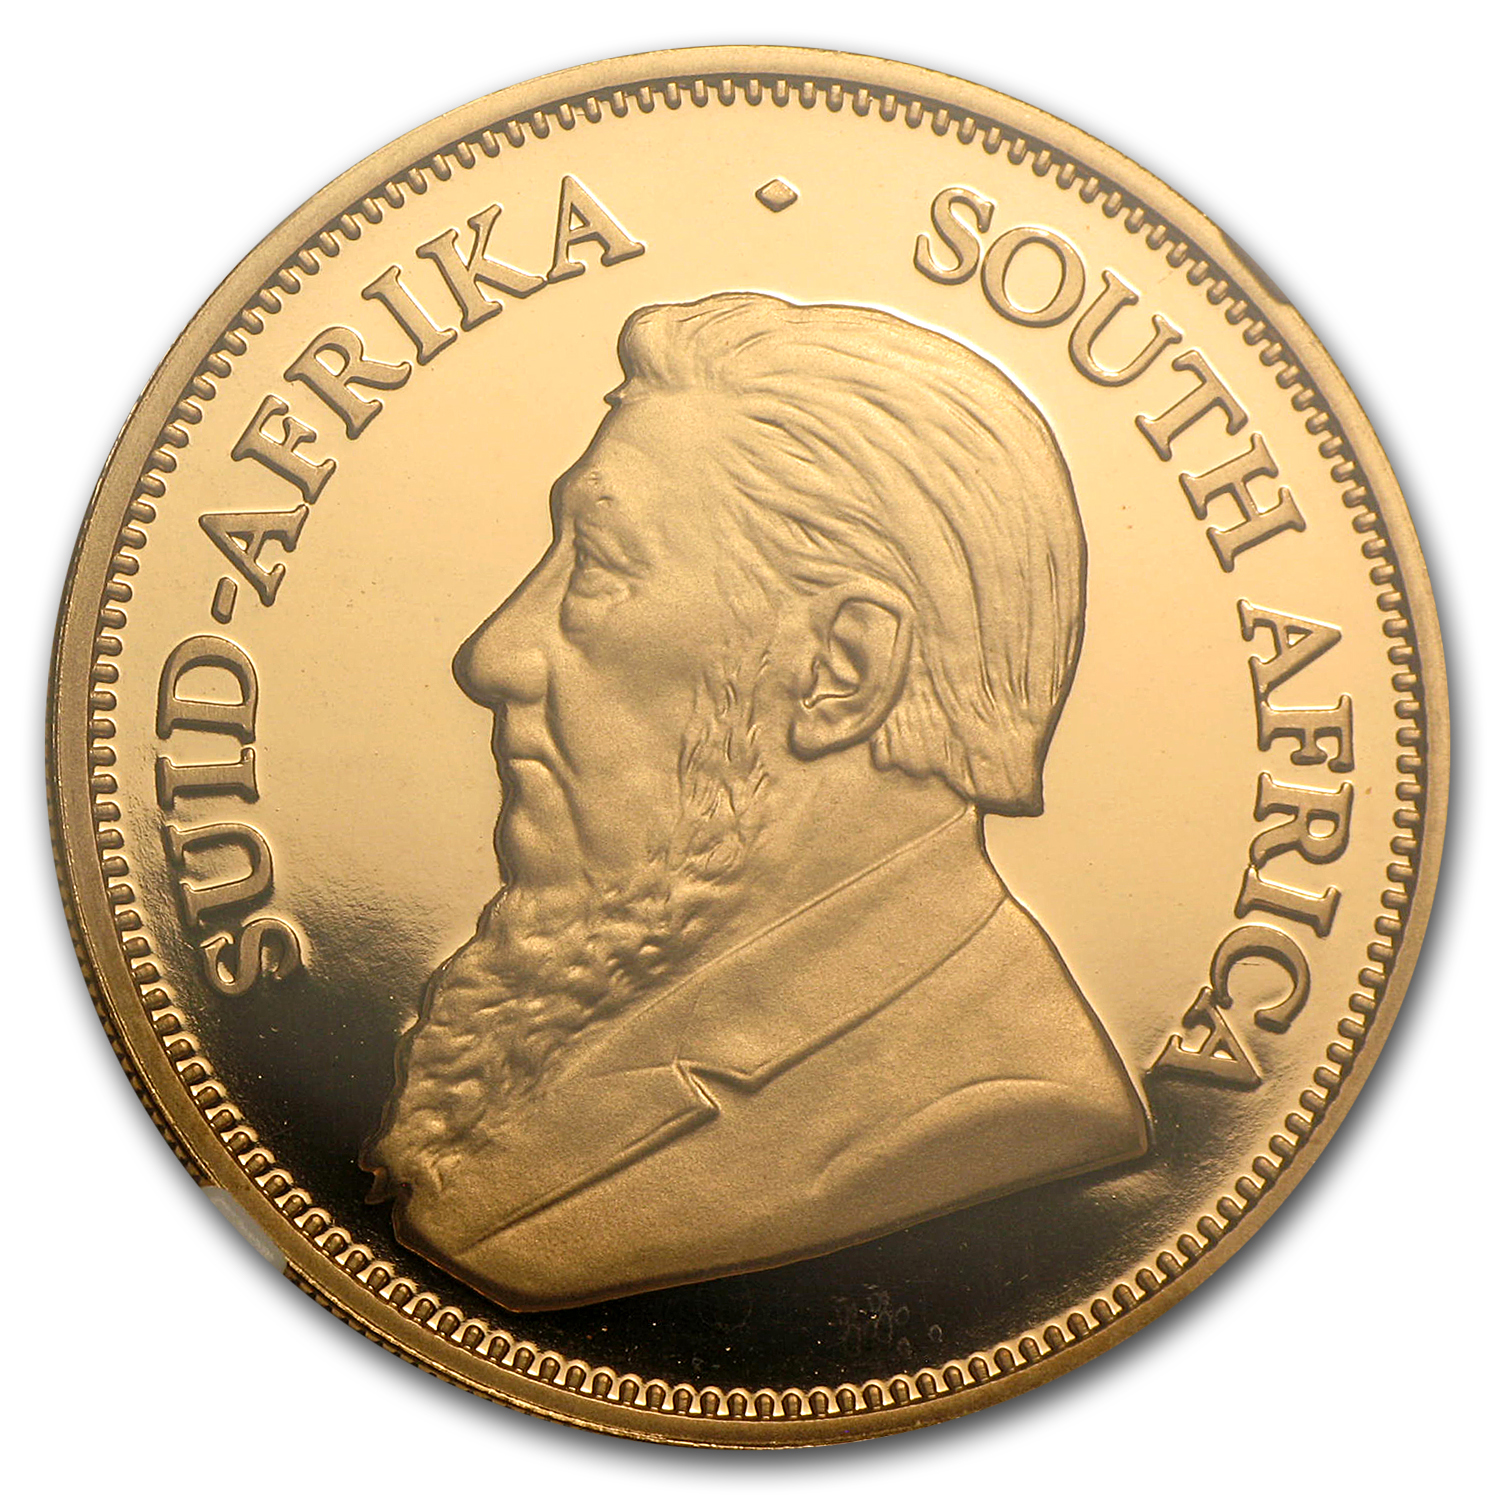 2003 1 oz Gold South African Krugerrand PF-69 NGC